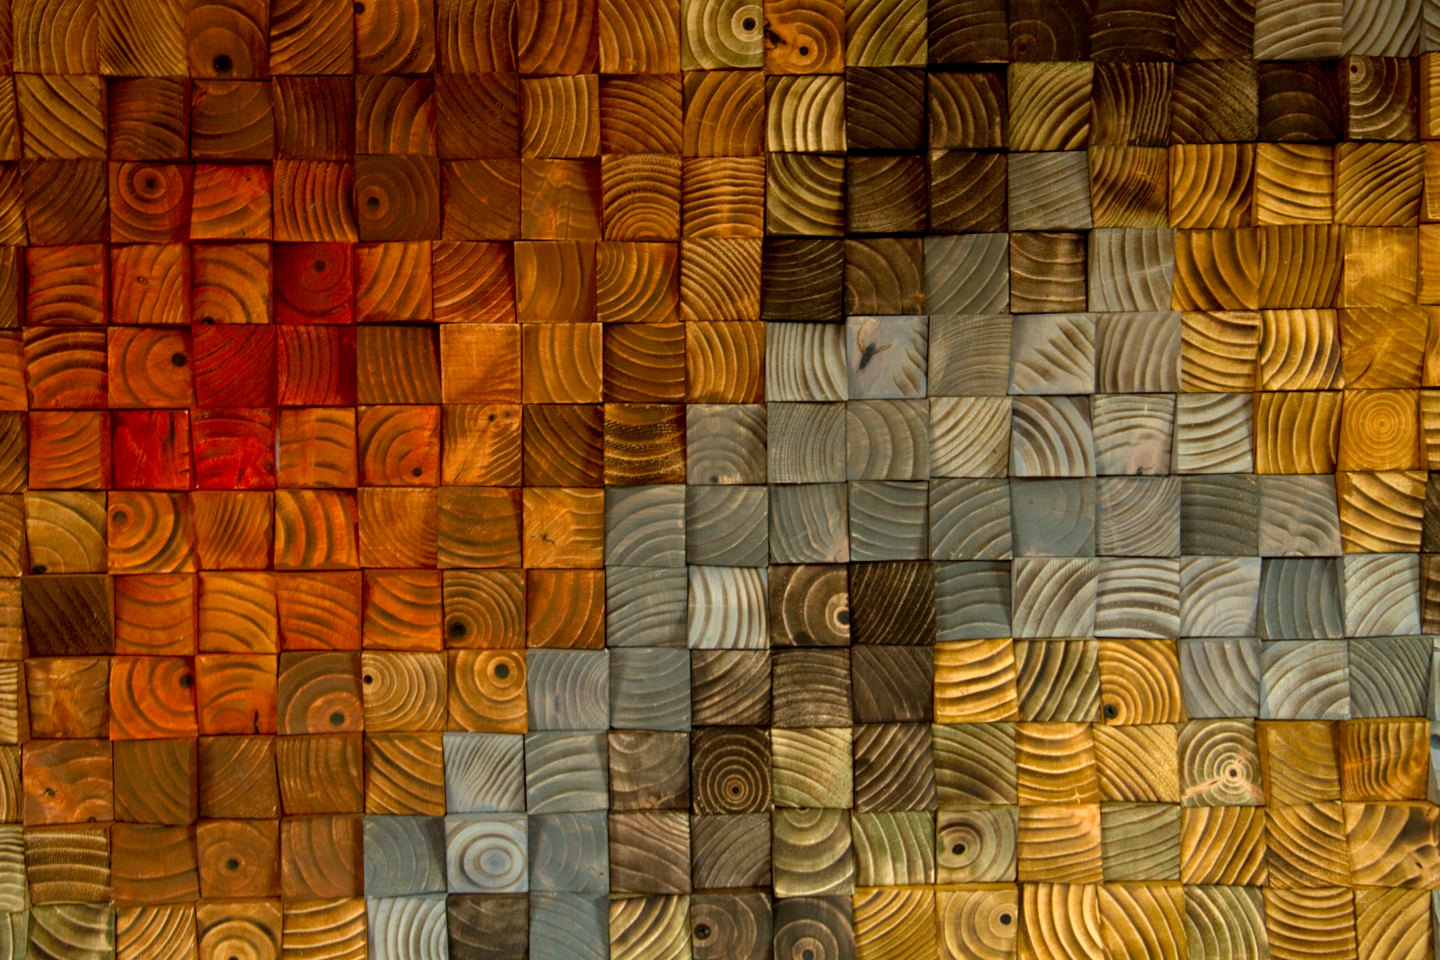 Rustic Wood wall Art,  wood wall sculpture, abstract wood art